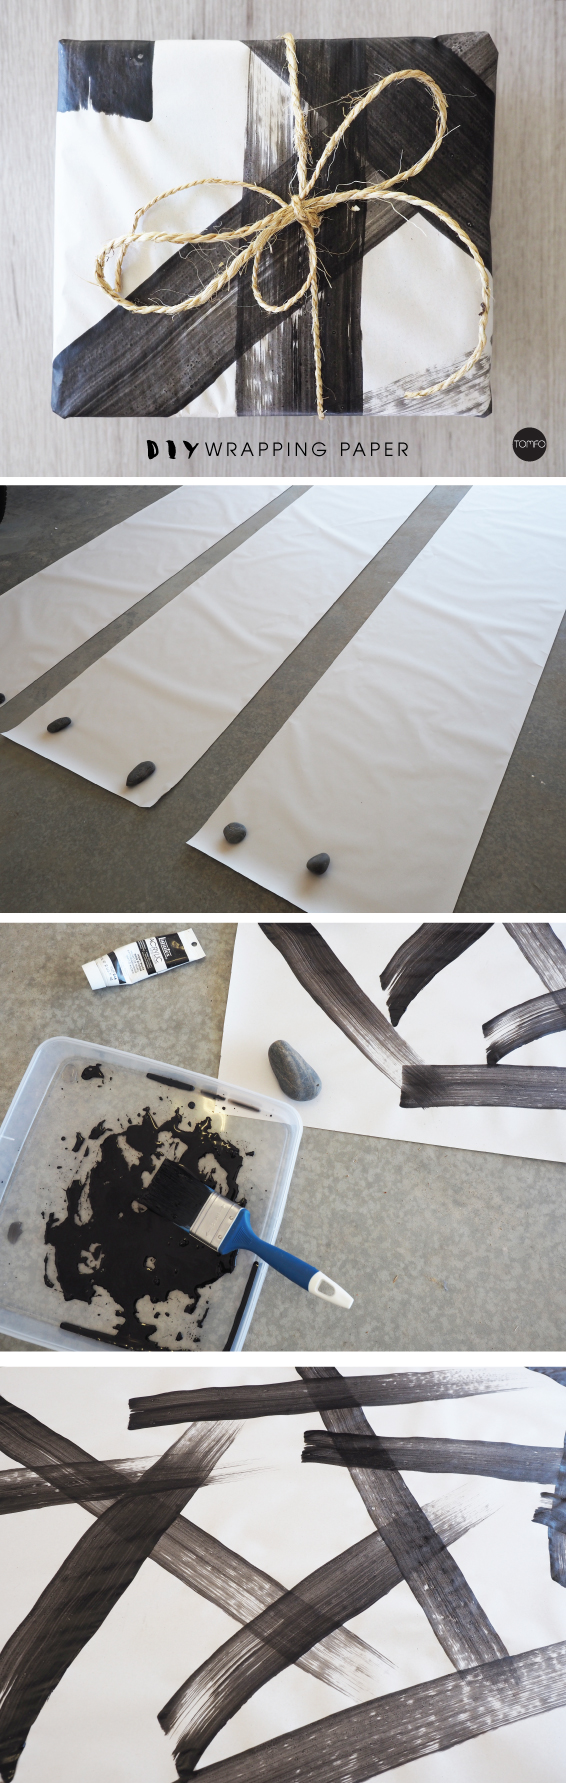 easy-diy-wrapping-paper-tomfo